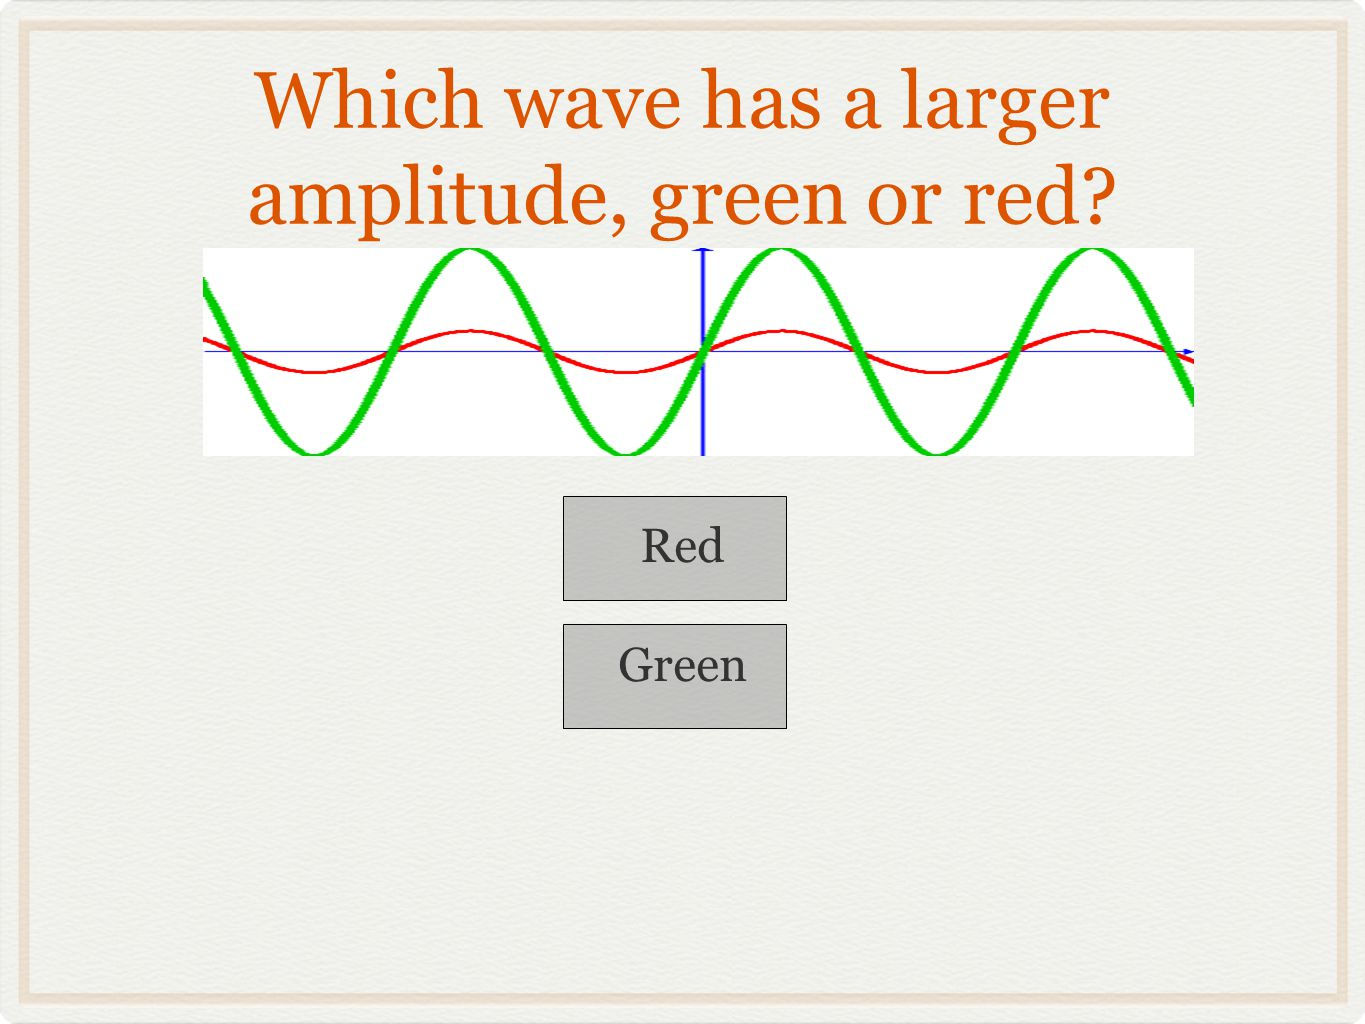 Which wave has a larger amplitude, green or red